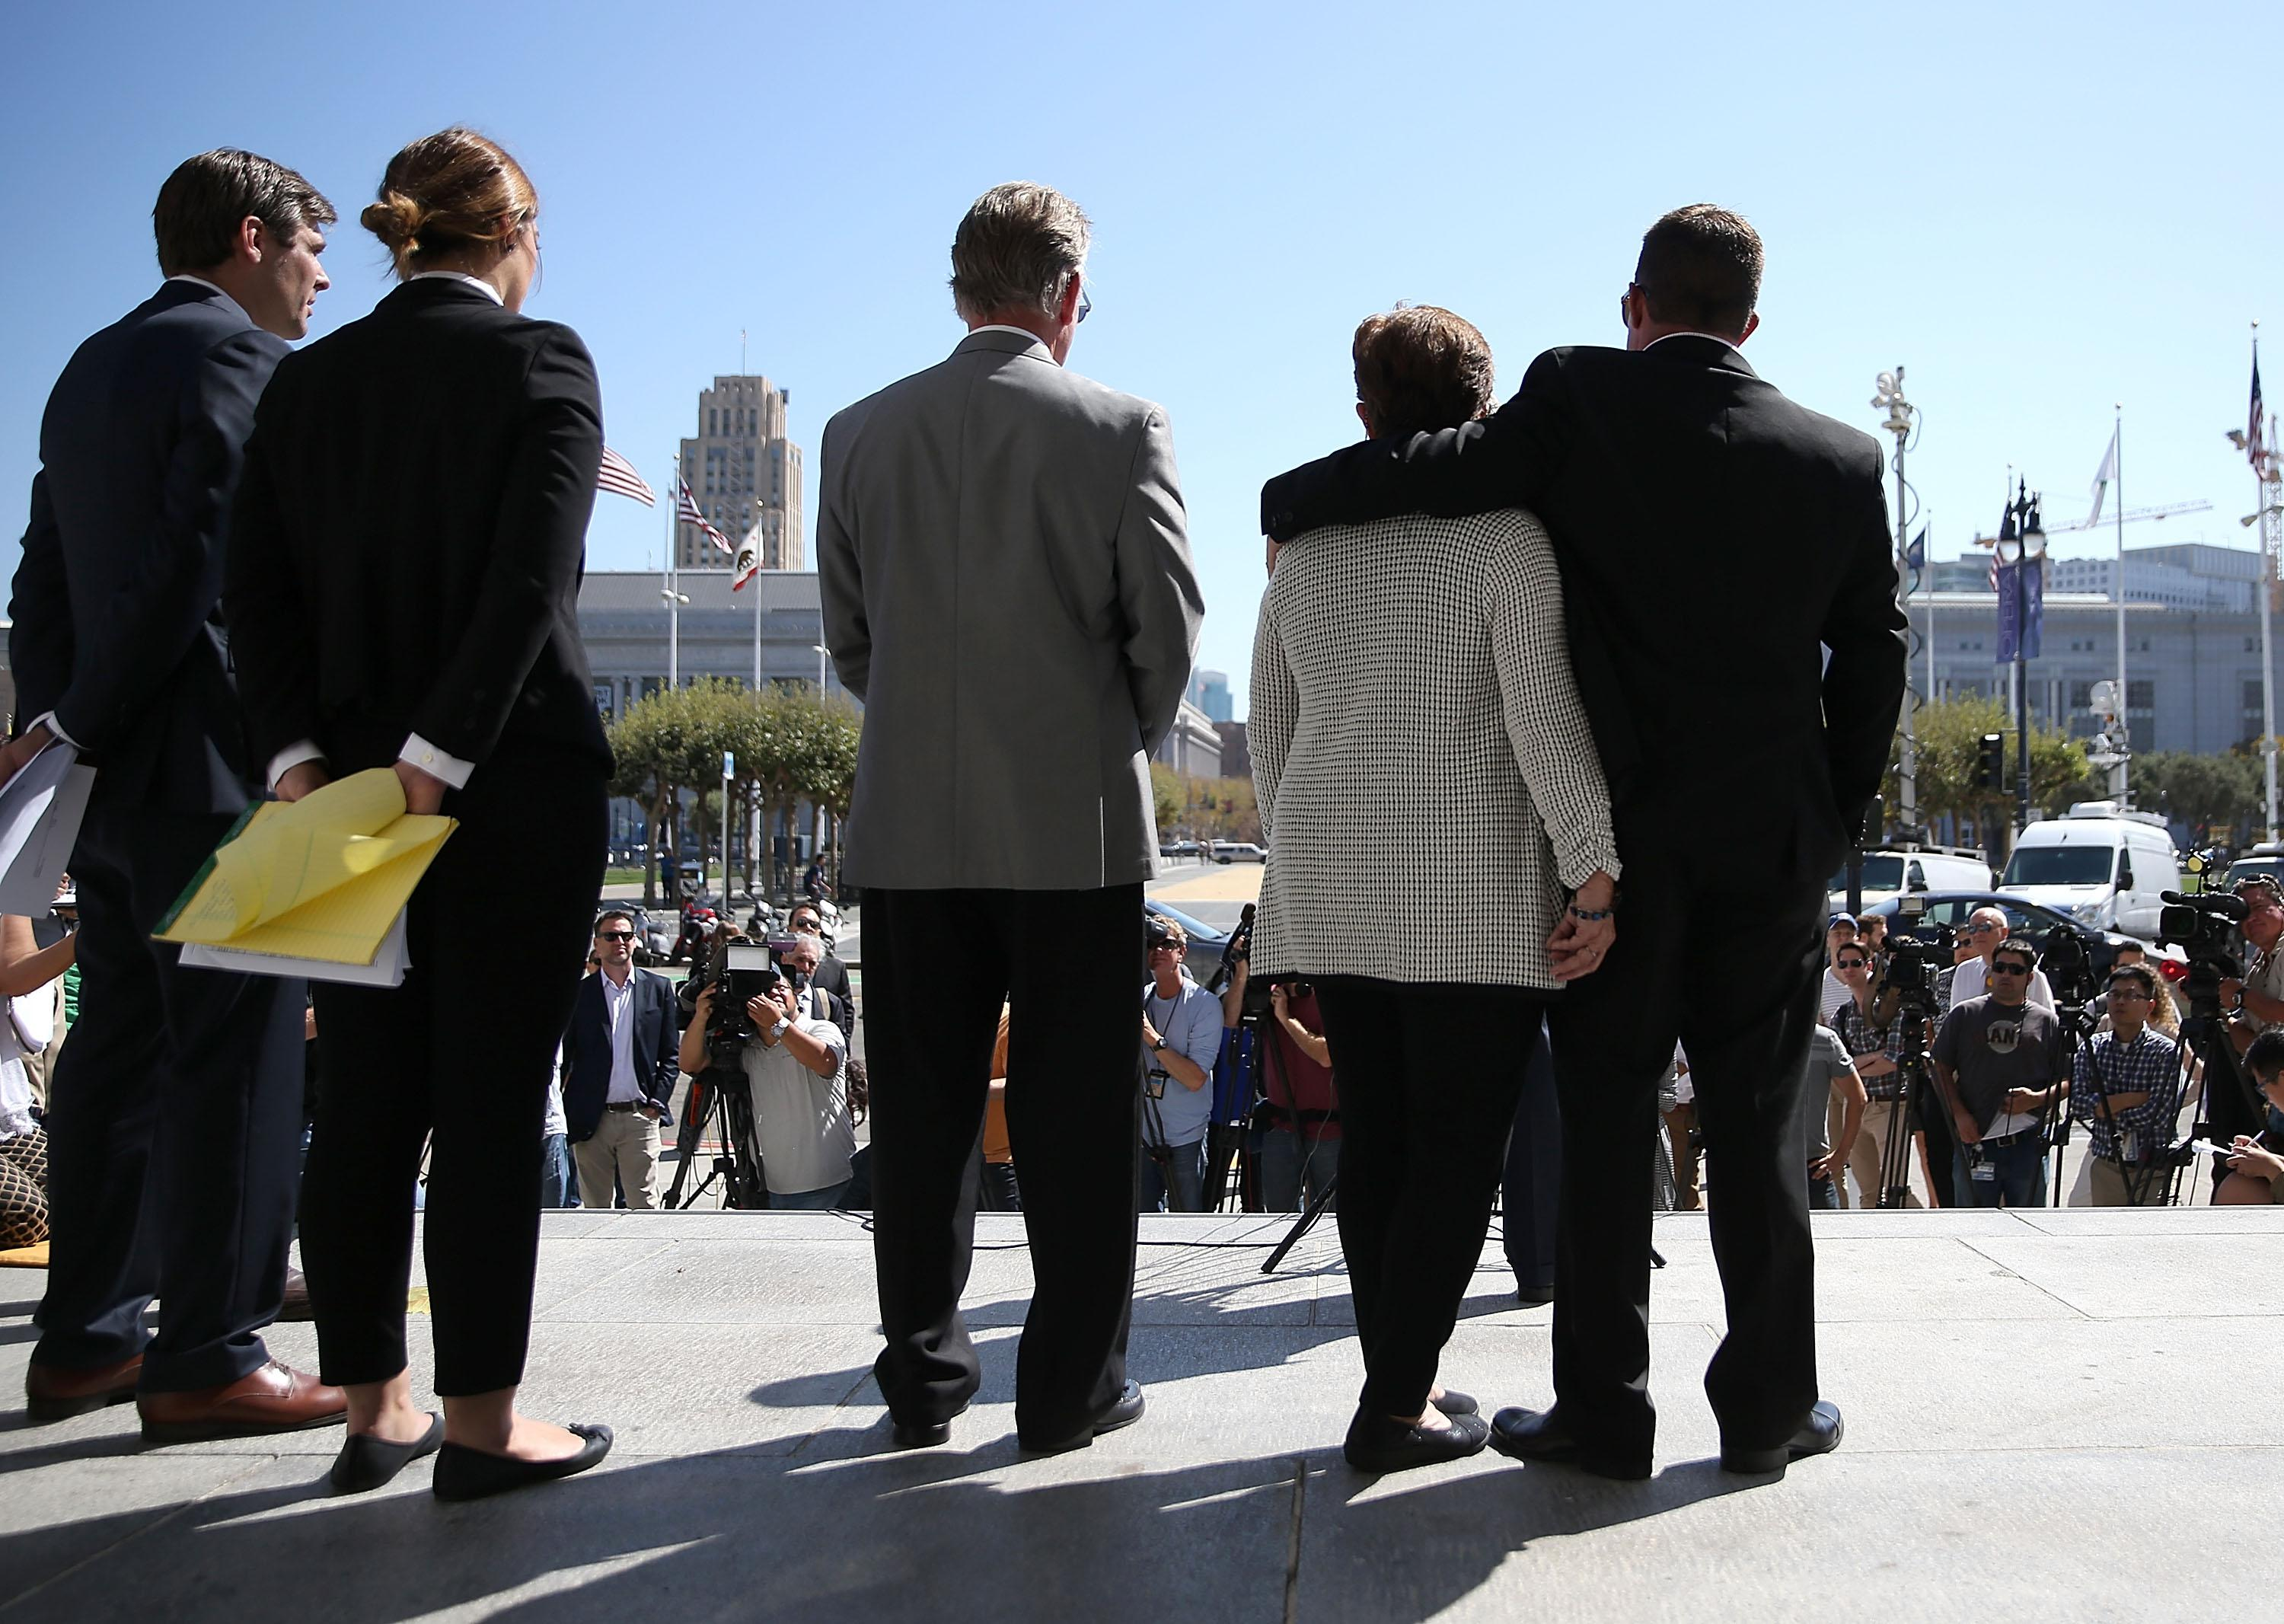 SAN FRANCISCO, CA - SEPTEMBER 01:  (R-L) Brad Steinle, Liz Sullivan and Jim Steinle, the family of Kate Steinle who was killed by an undocumented immigrant, look on during a news conference on September 1, 2015 in San Francisco, California. The family of Kate Steinle who was killed by an undocumented immigrant, have filed claims against San Francisco Sheriff Ross Mirkarimi, the Bureau of Land Management and Immigration and Customs Enforcement for their role in their daughter's death.  (Photo by Justin Sullivan/Getty Images)